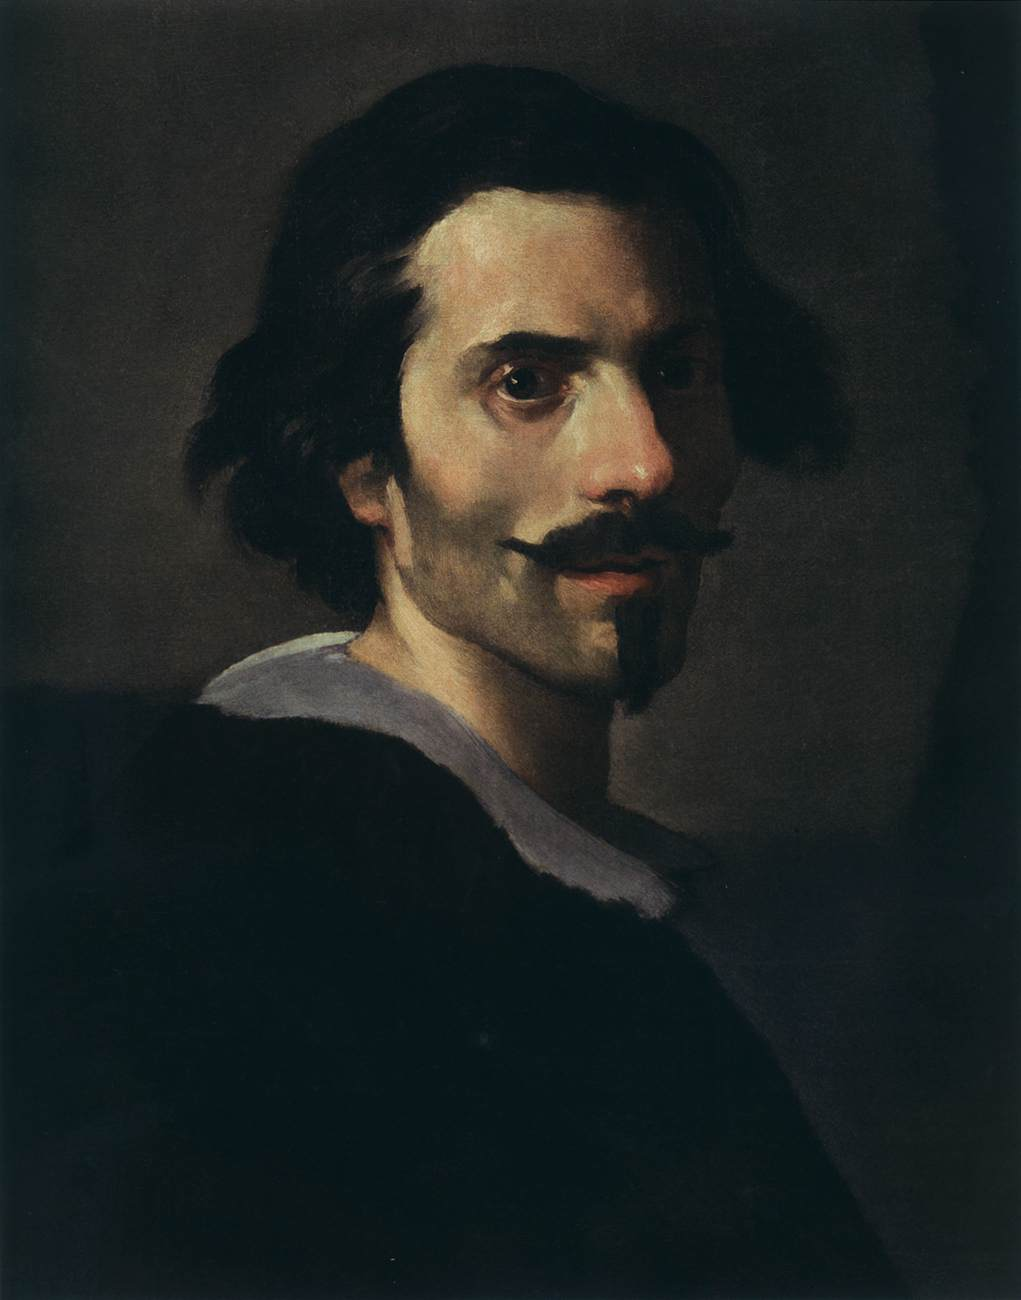 art day self portrait of bernini a fiery expression was part of a double portrait costanza bonarelli in bernini s will it is mentioned as already